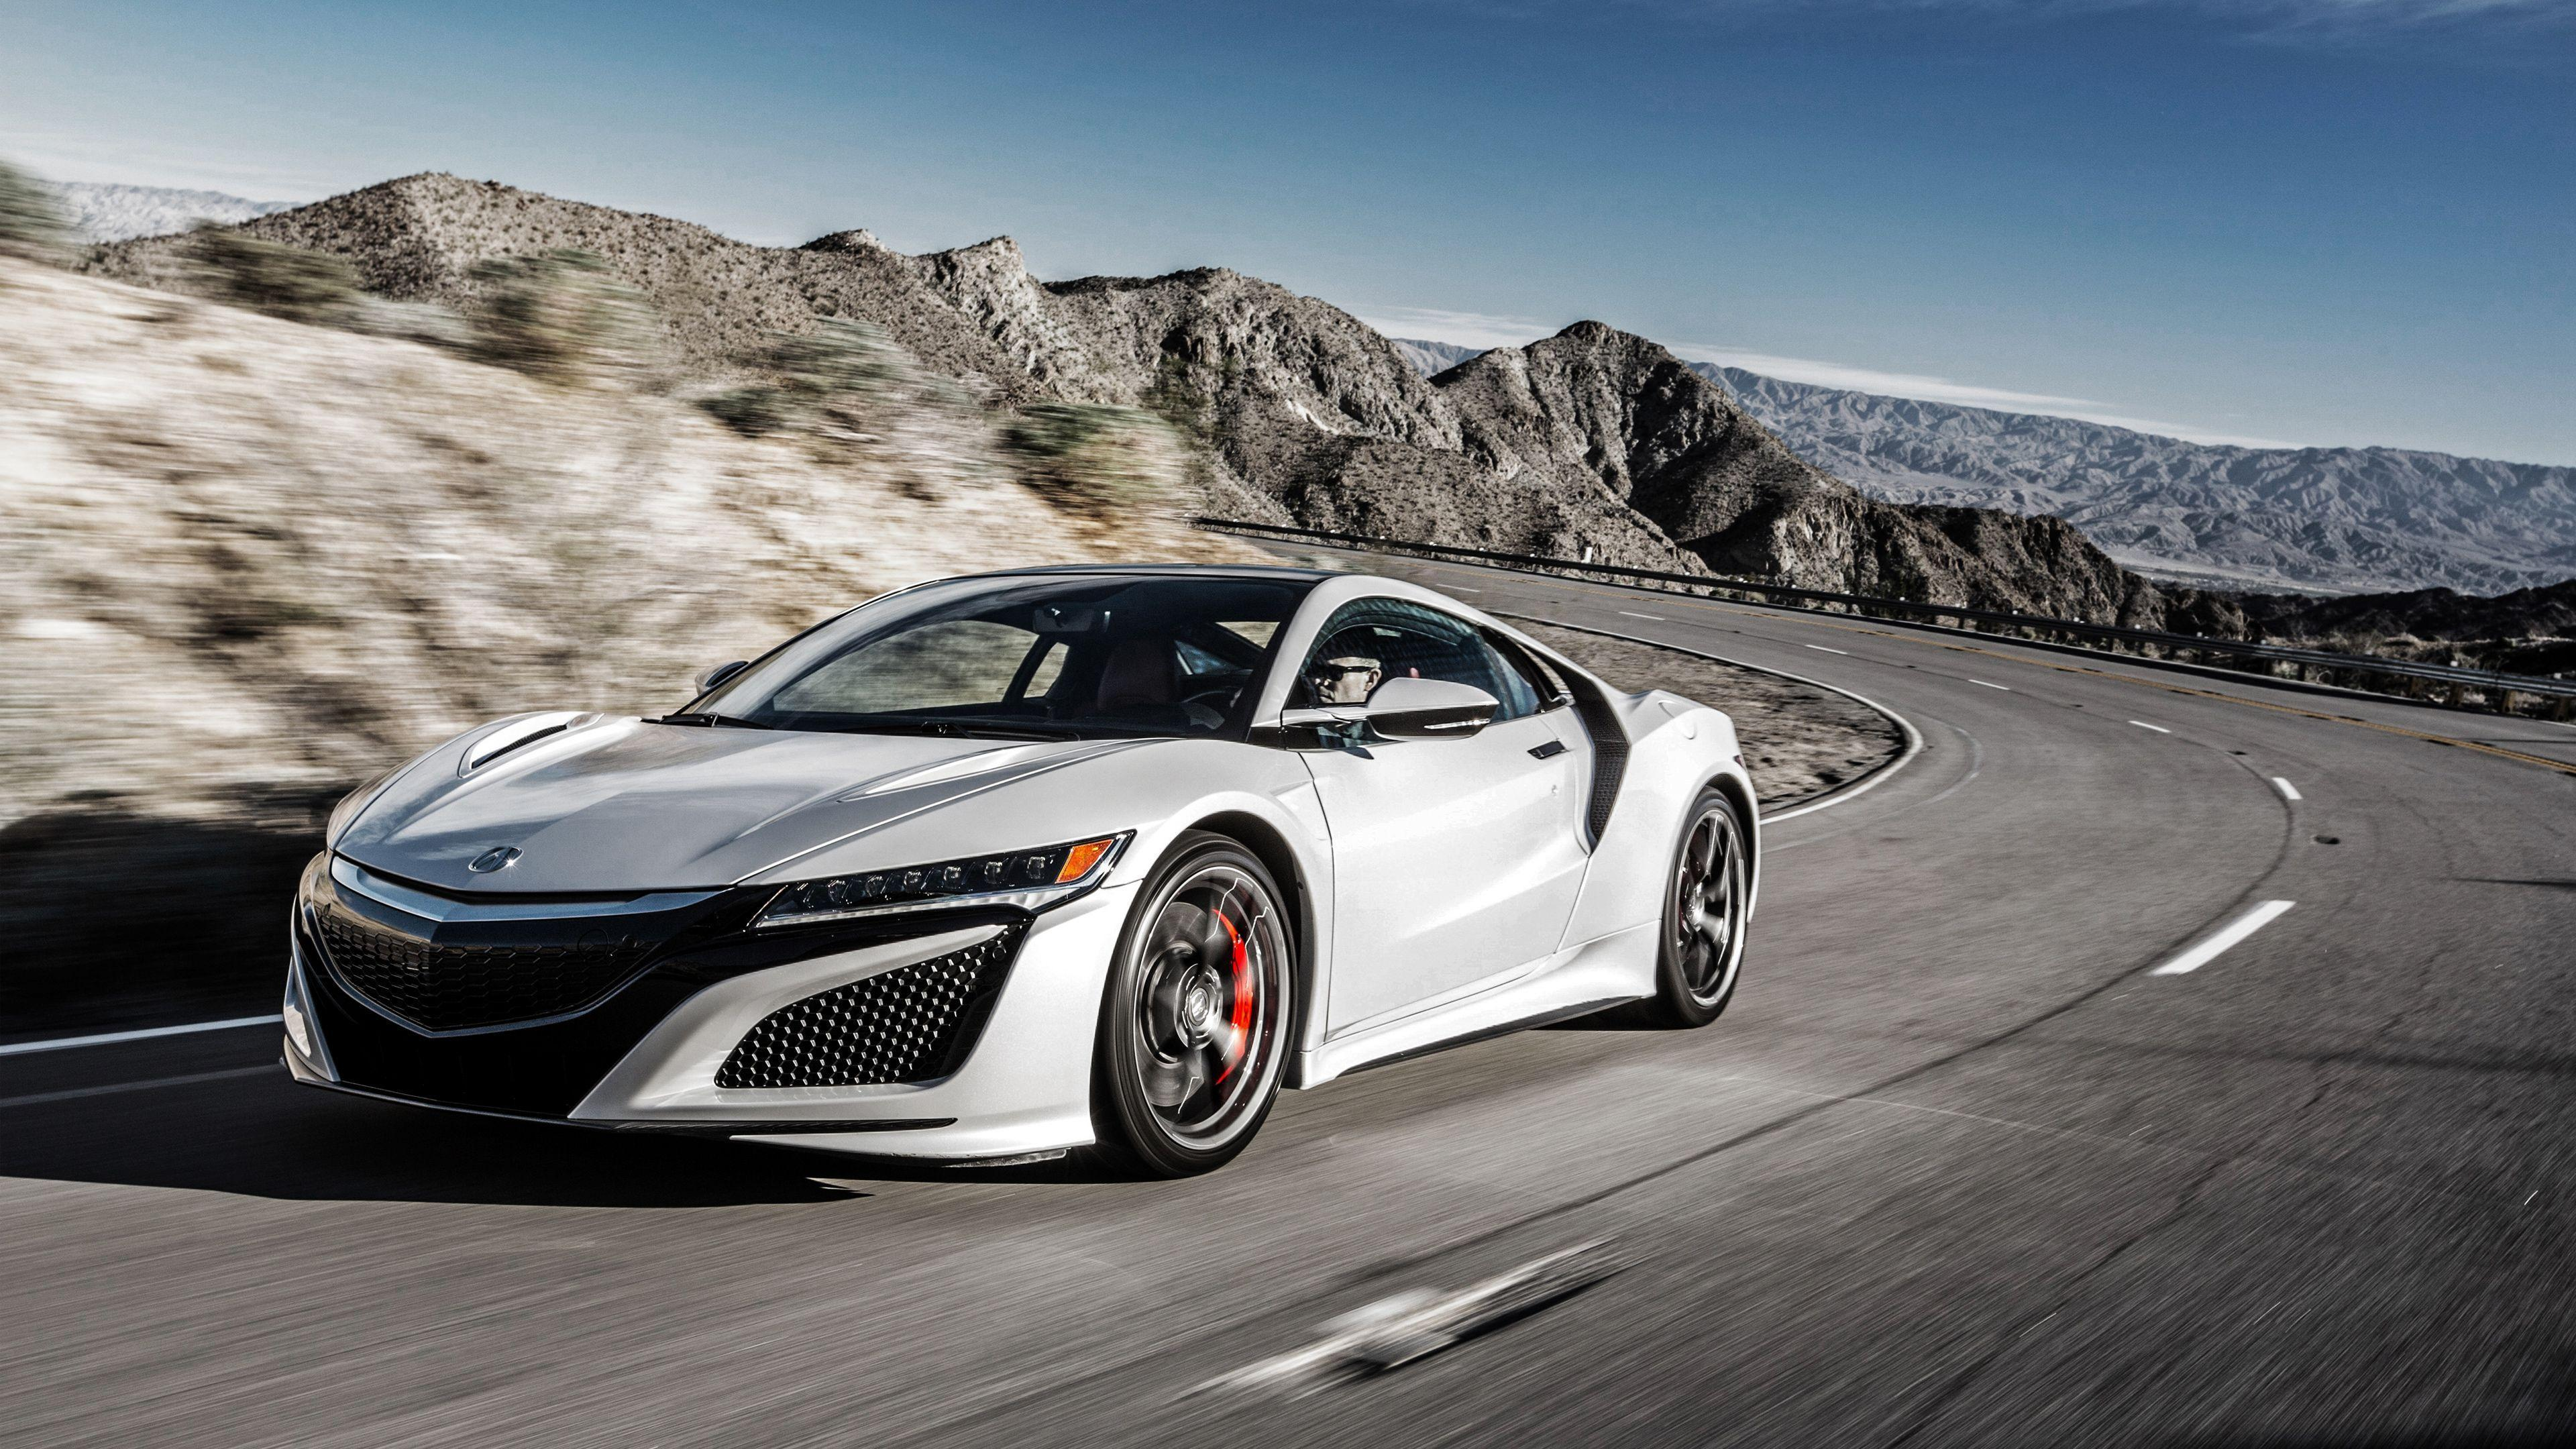 Honda Acura NSX 4K Wallpaper | HD Car Wallpapers